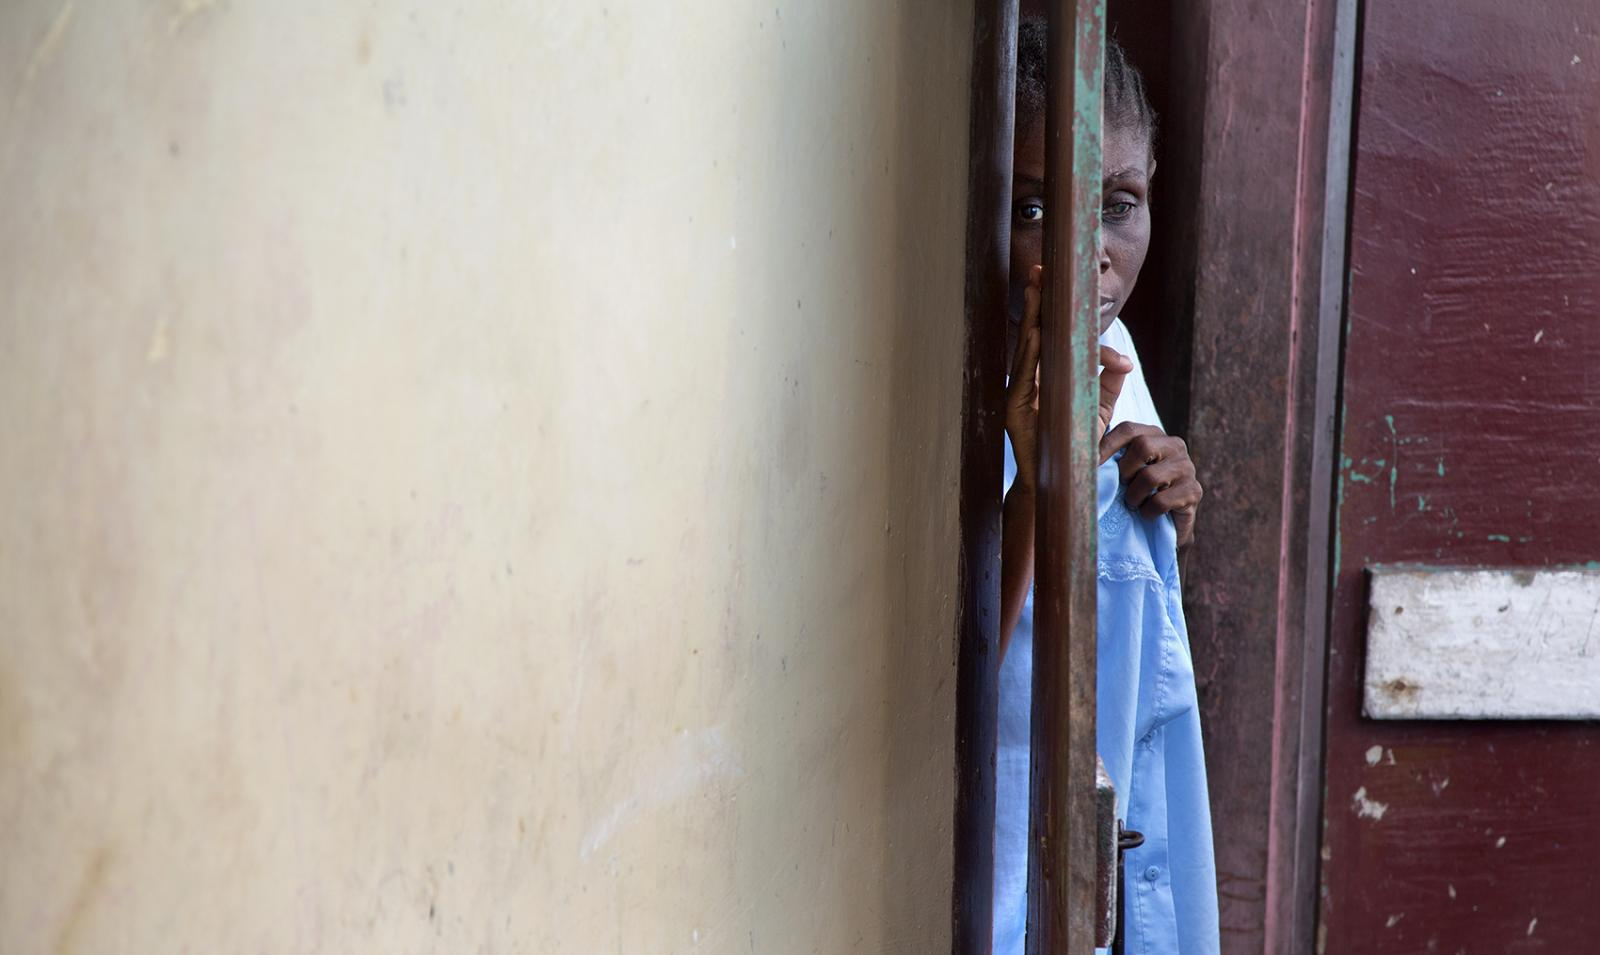 A woman peers through the doorway of her home in Milot, Haiti. She is a breast cancer survivor, which is not common in the area due to lack of early detection.